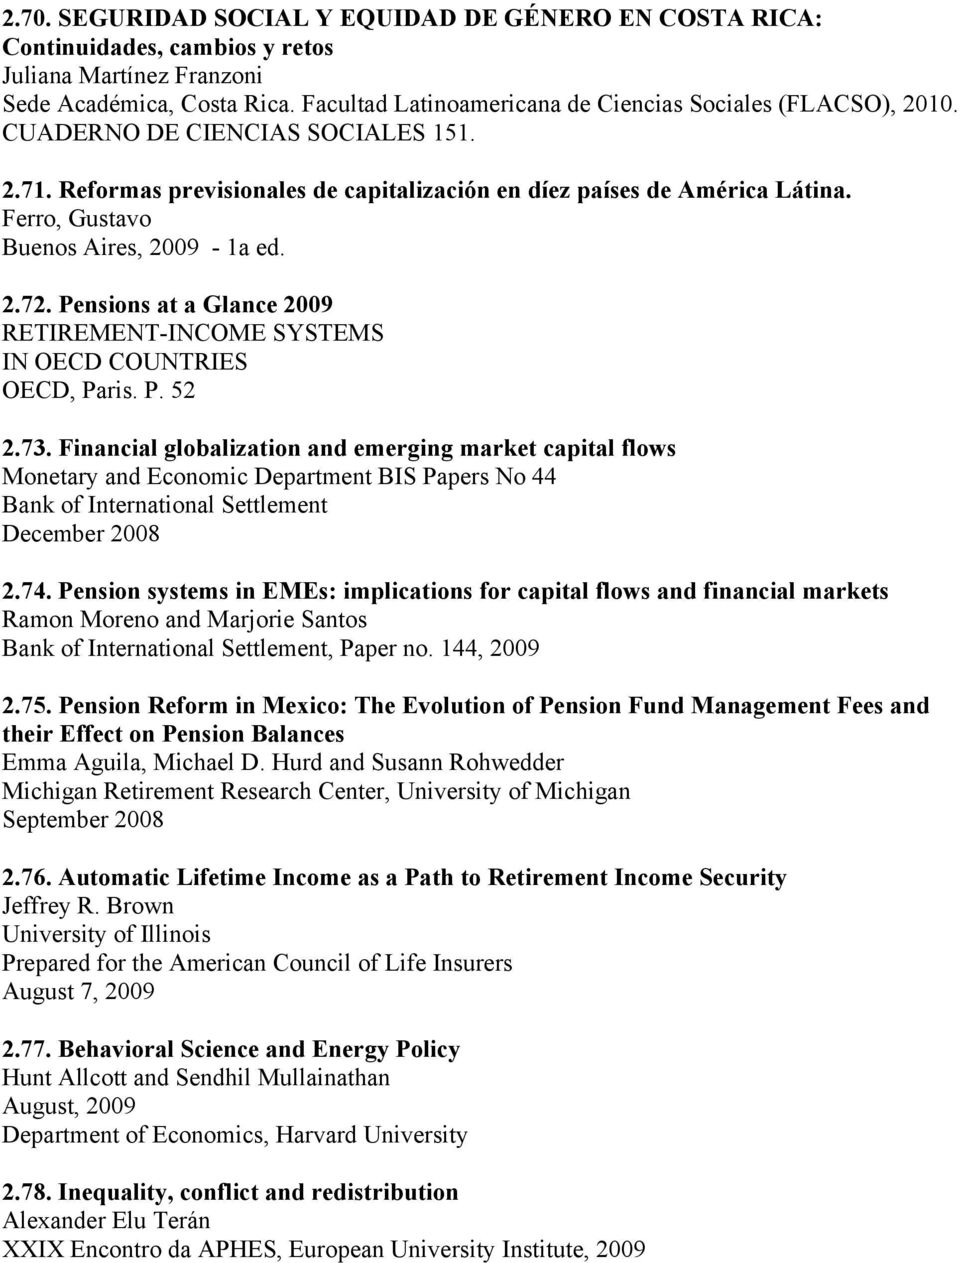 Ferro, Gustavo Buenos Aires, 2009-1a ed. 2.72. Pensions at a Glance 2009 RETIREMENT-INCOME SYSTEMS IN OECD COUNTRIES OECD, Paris. P. 52 2.73.